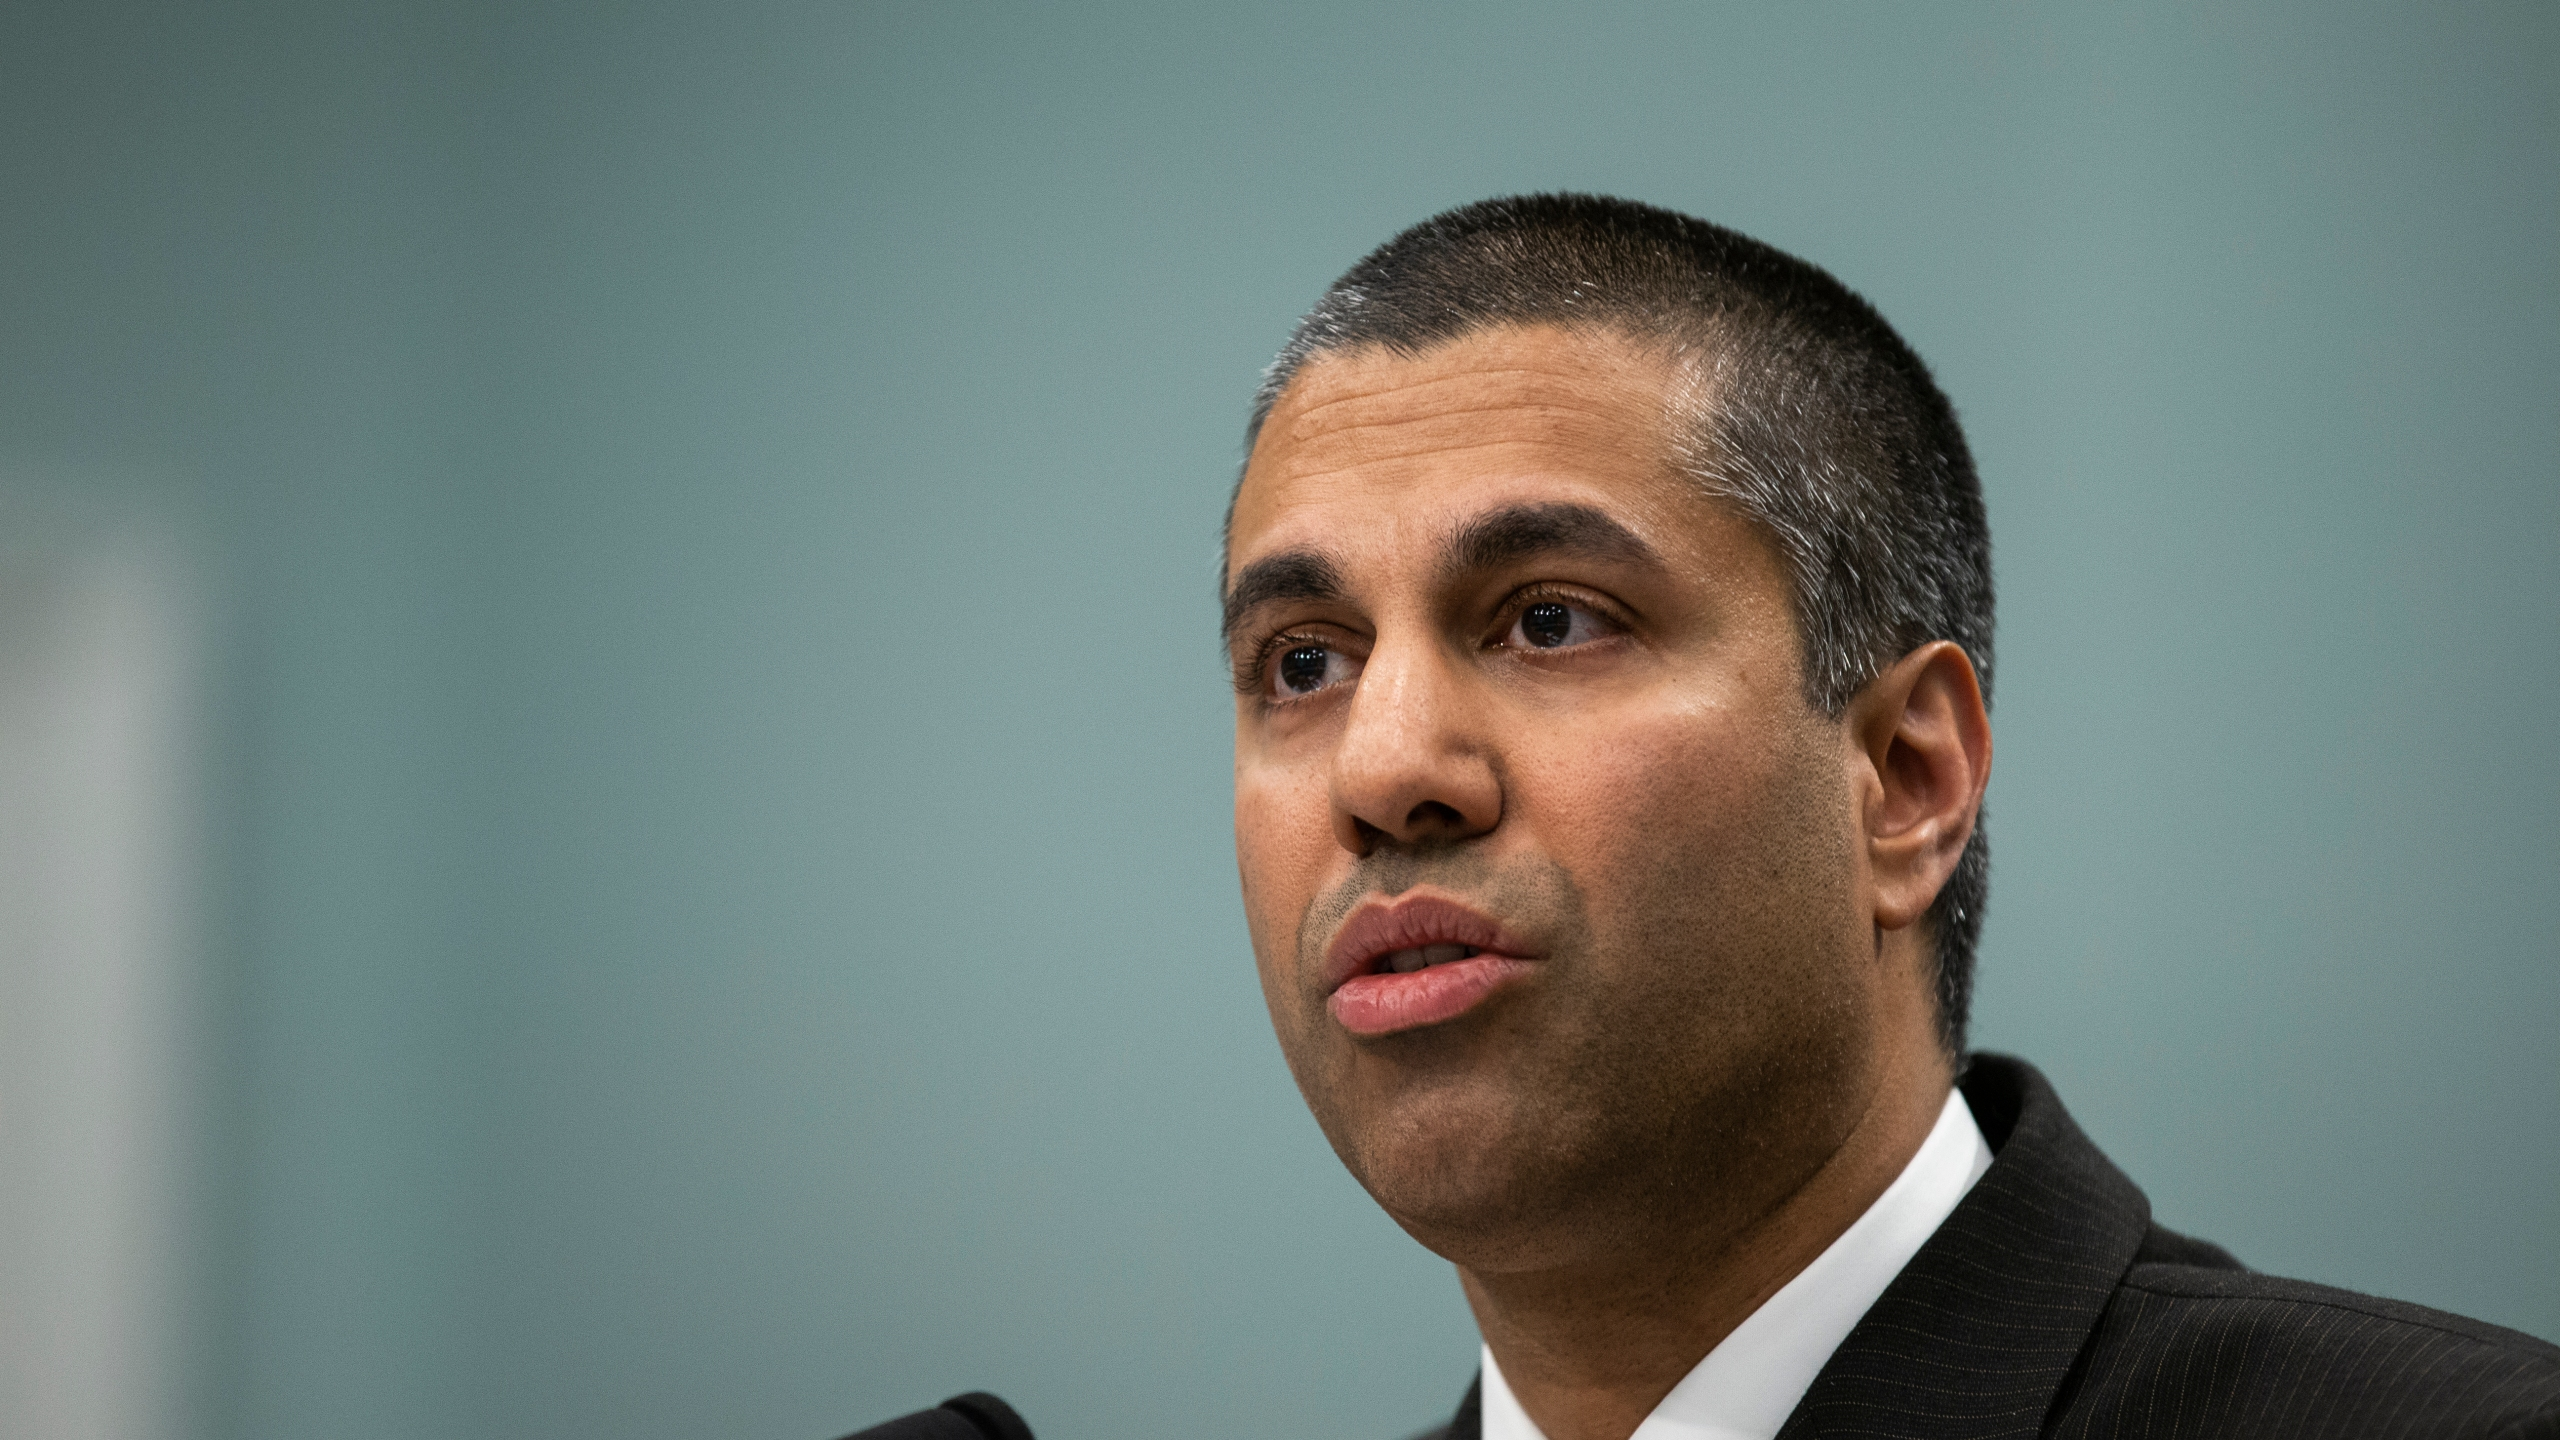 FCC Chairman Ajit Pai testifies before the House Appropriations Committee during a hearing on the 2019FY FCC Budget on April 26, 2018. (Credit: Alex Edelman/Getty Images)